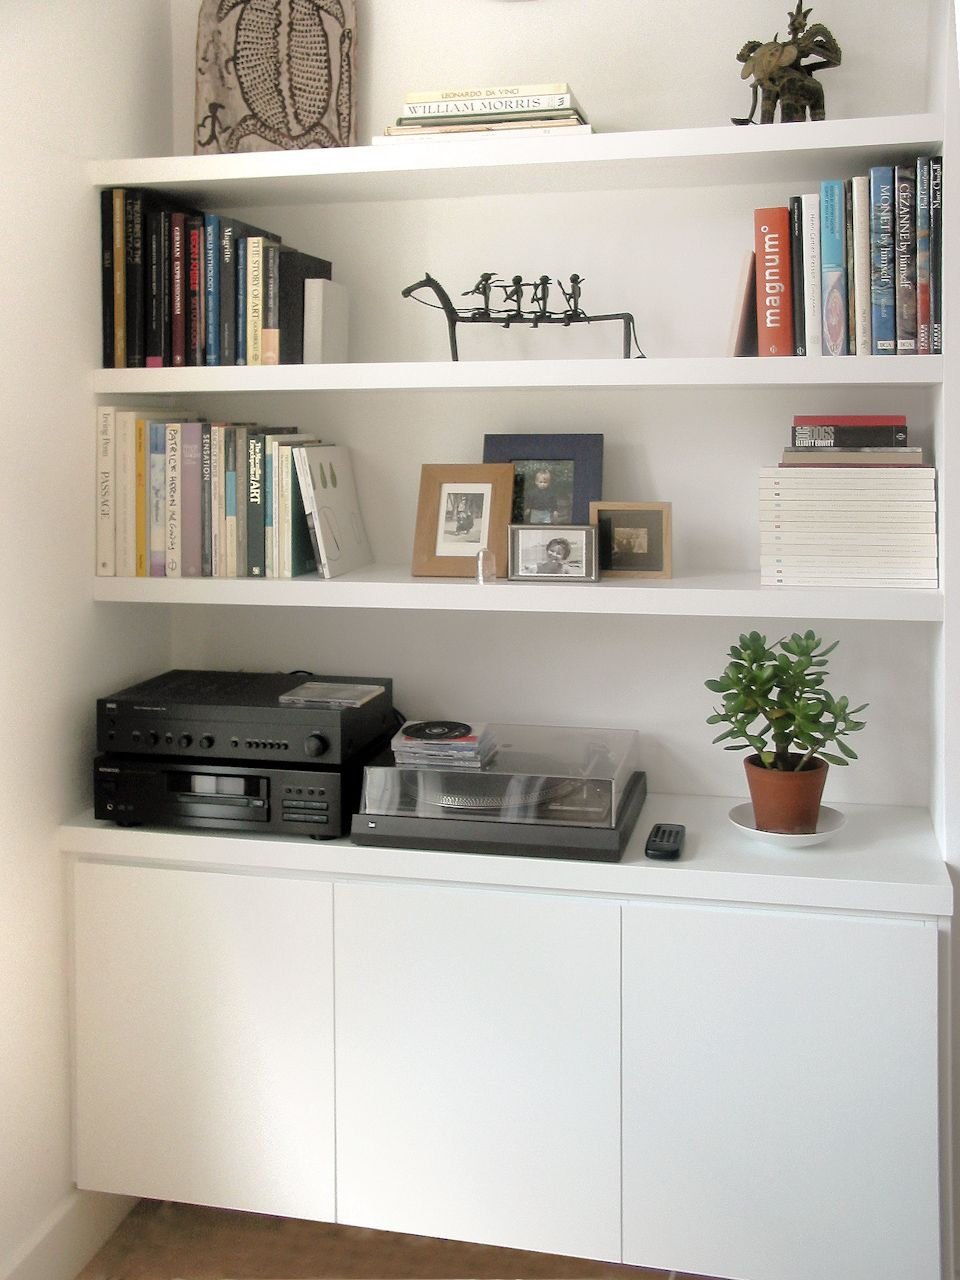 alcove storage idea plain white like the bottom handless doors thick floating shelves but would uneven open boxes set above then another cupboard top kitchen items command hook